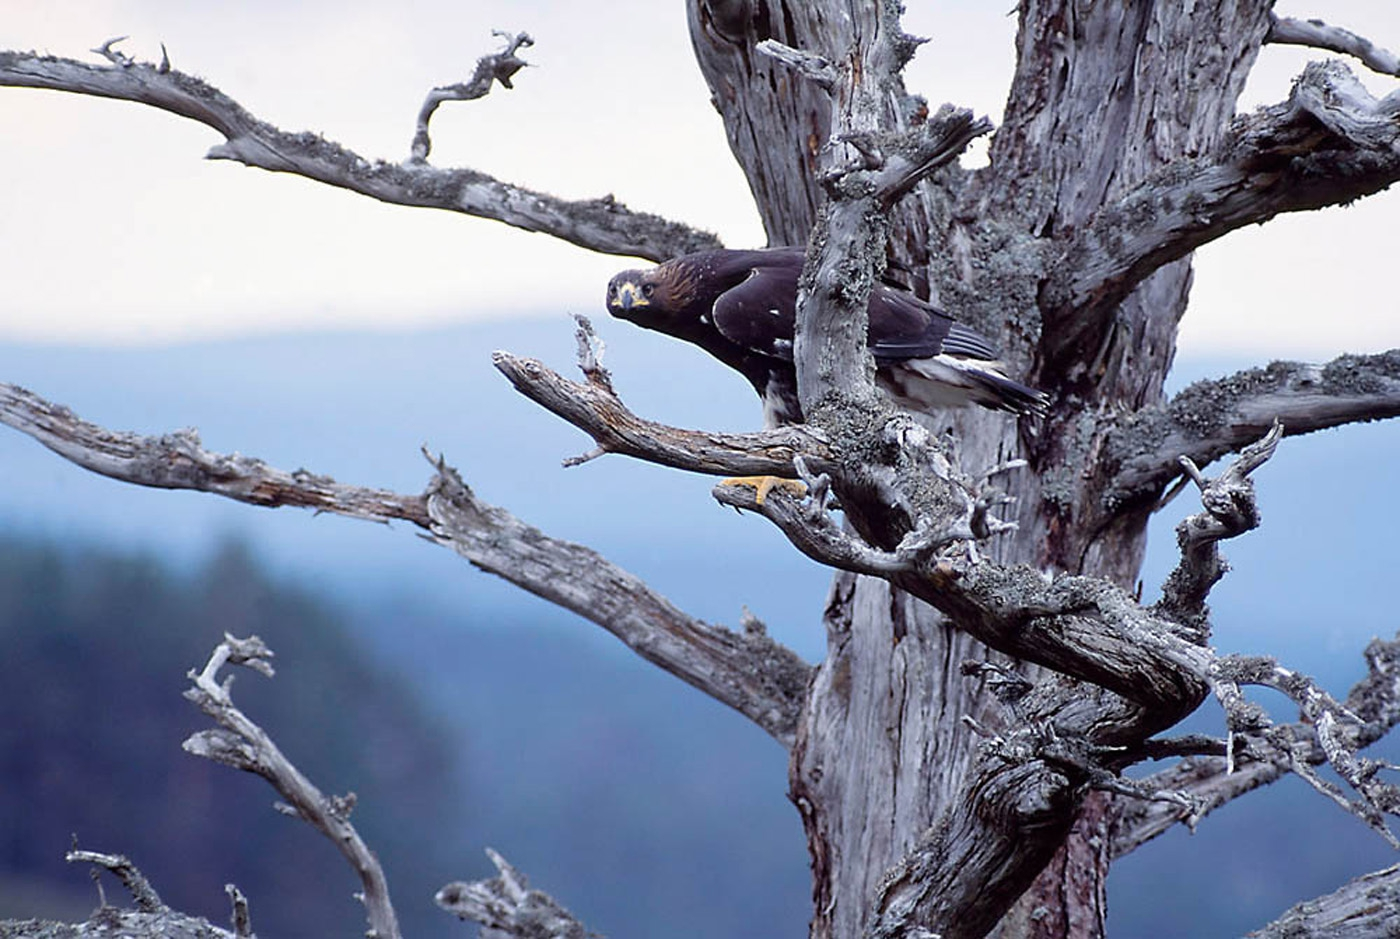 Juvenile Eagle in tree